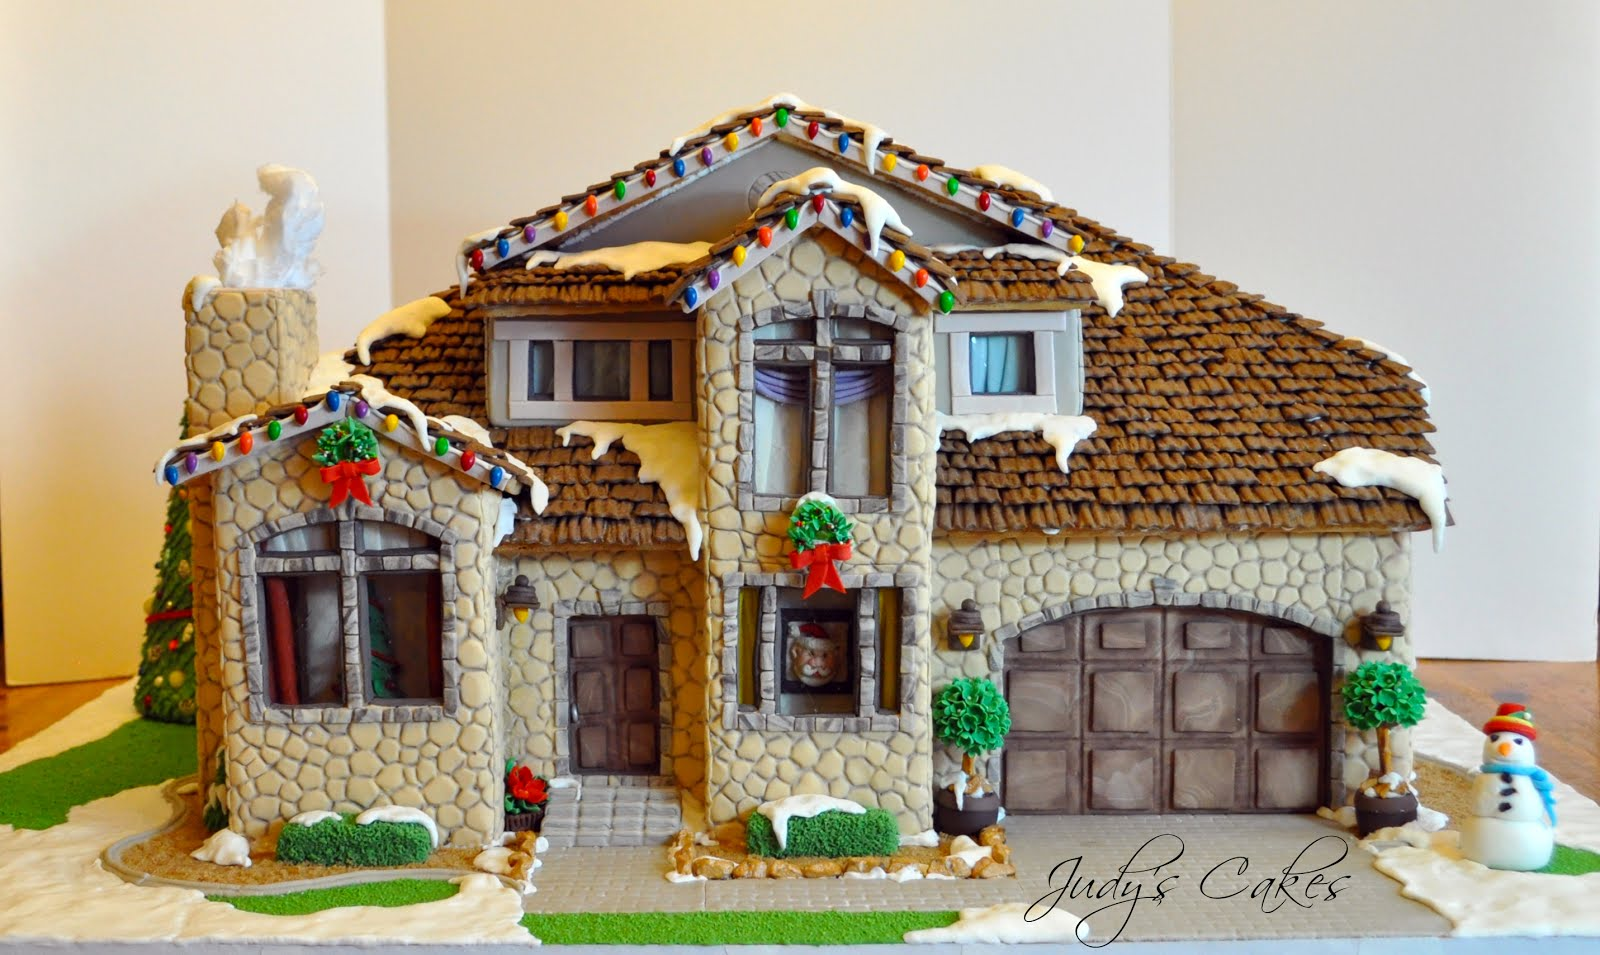 Judy 39 s cakes vote for my gingerbread house - Houses decorated ...